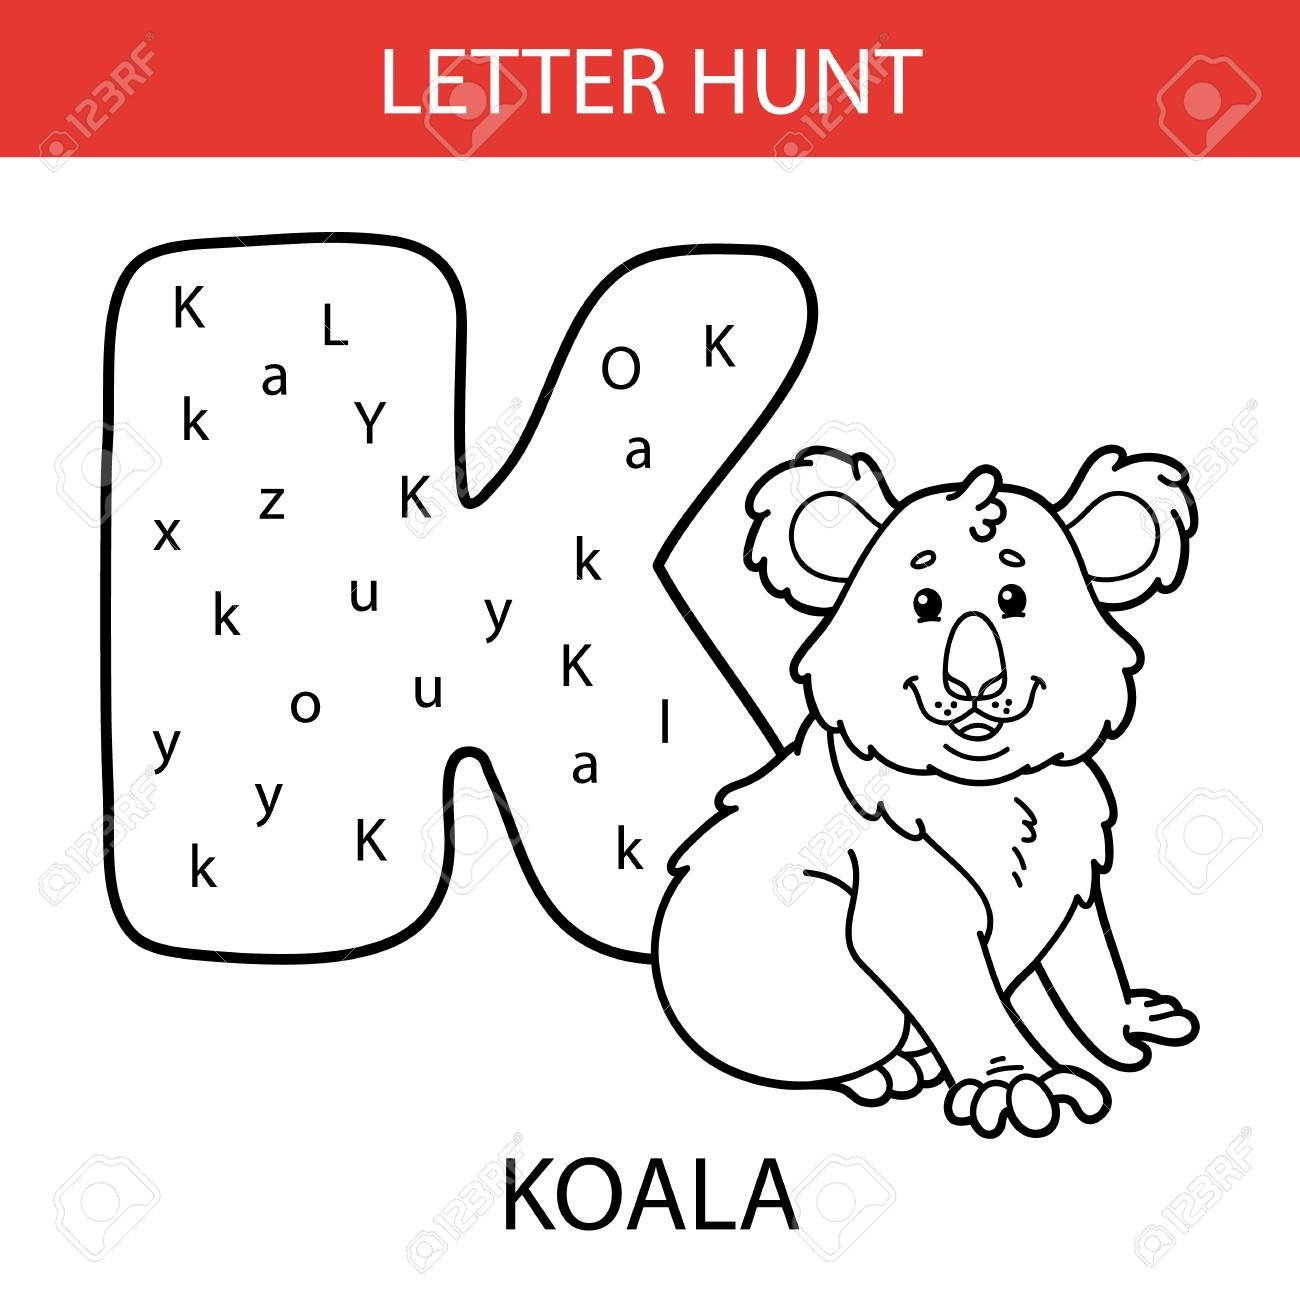 Letter Hunt Worksheet Vector Illustration Of Printable Kids Alphabet Worksheets Educational